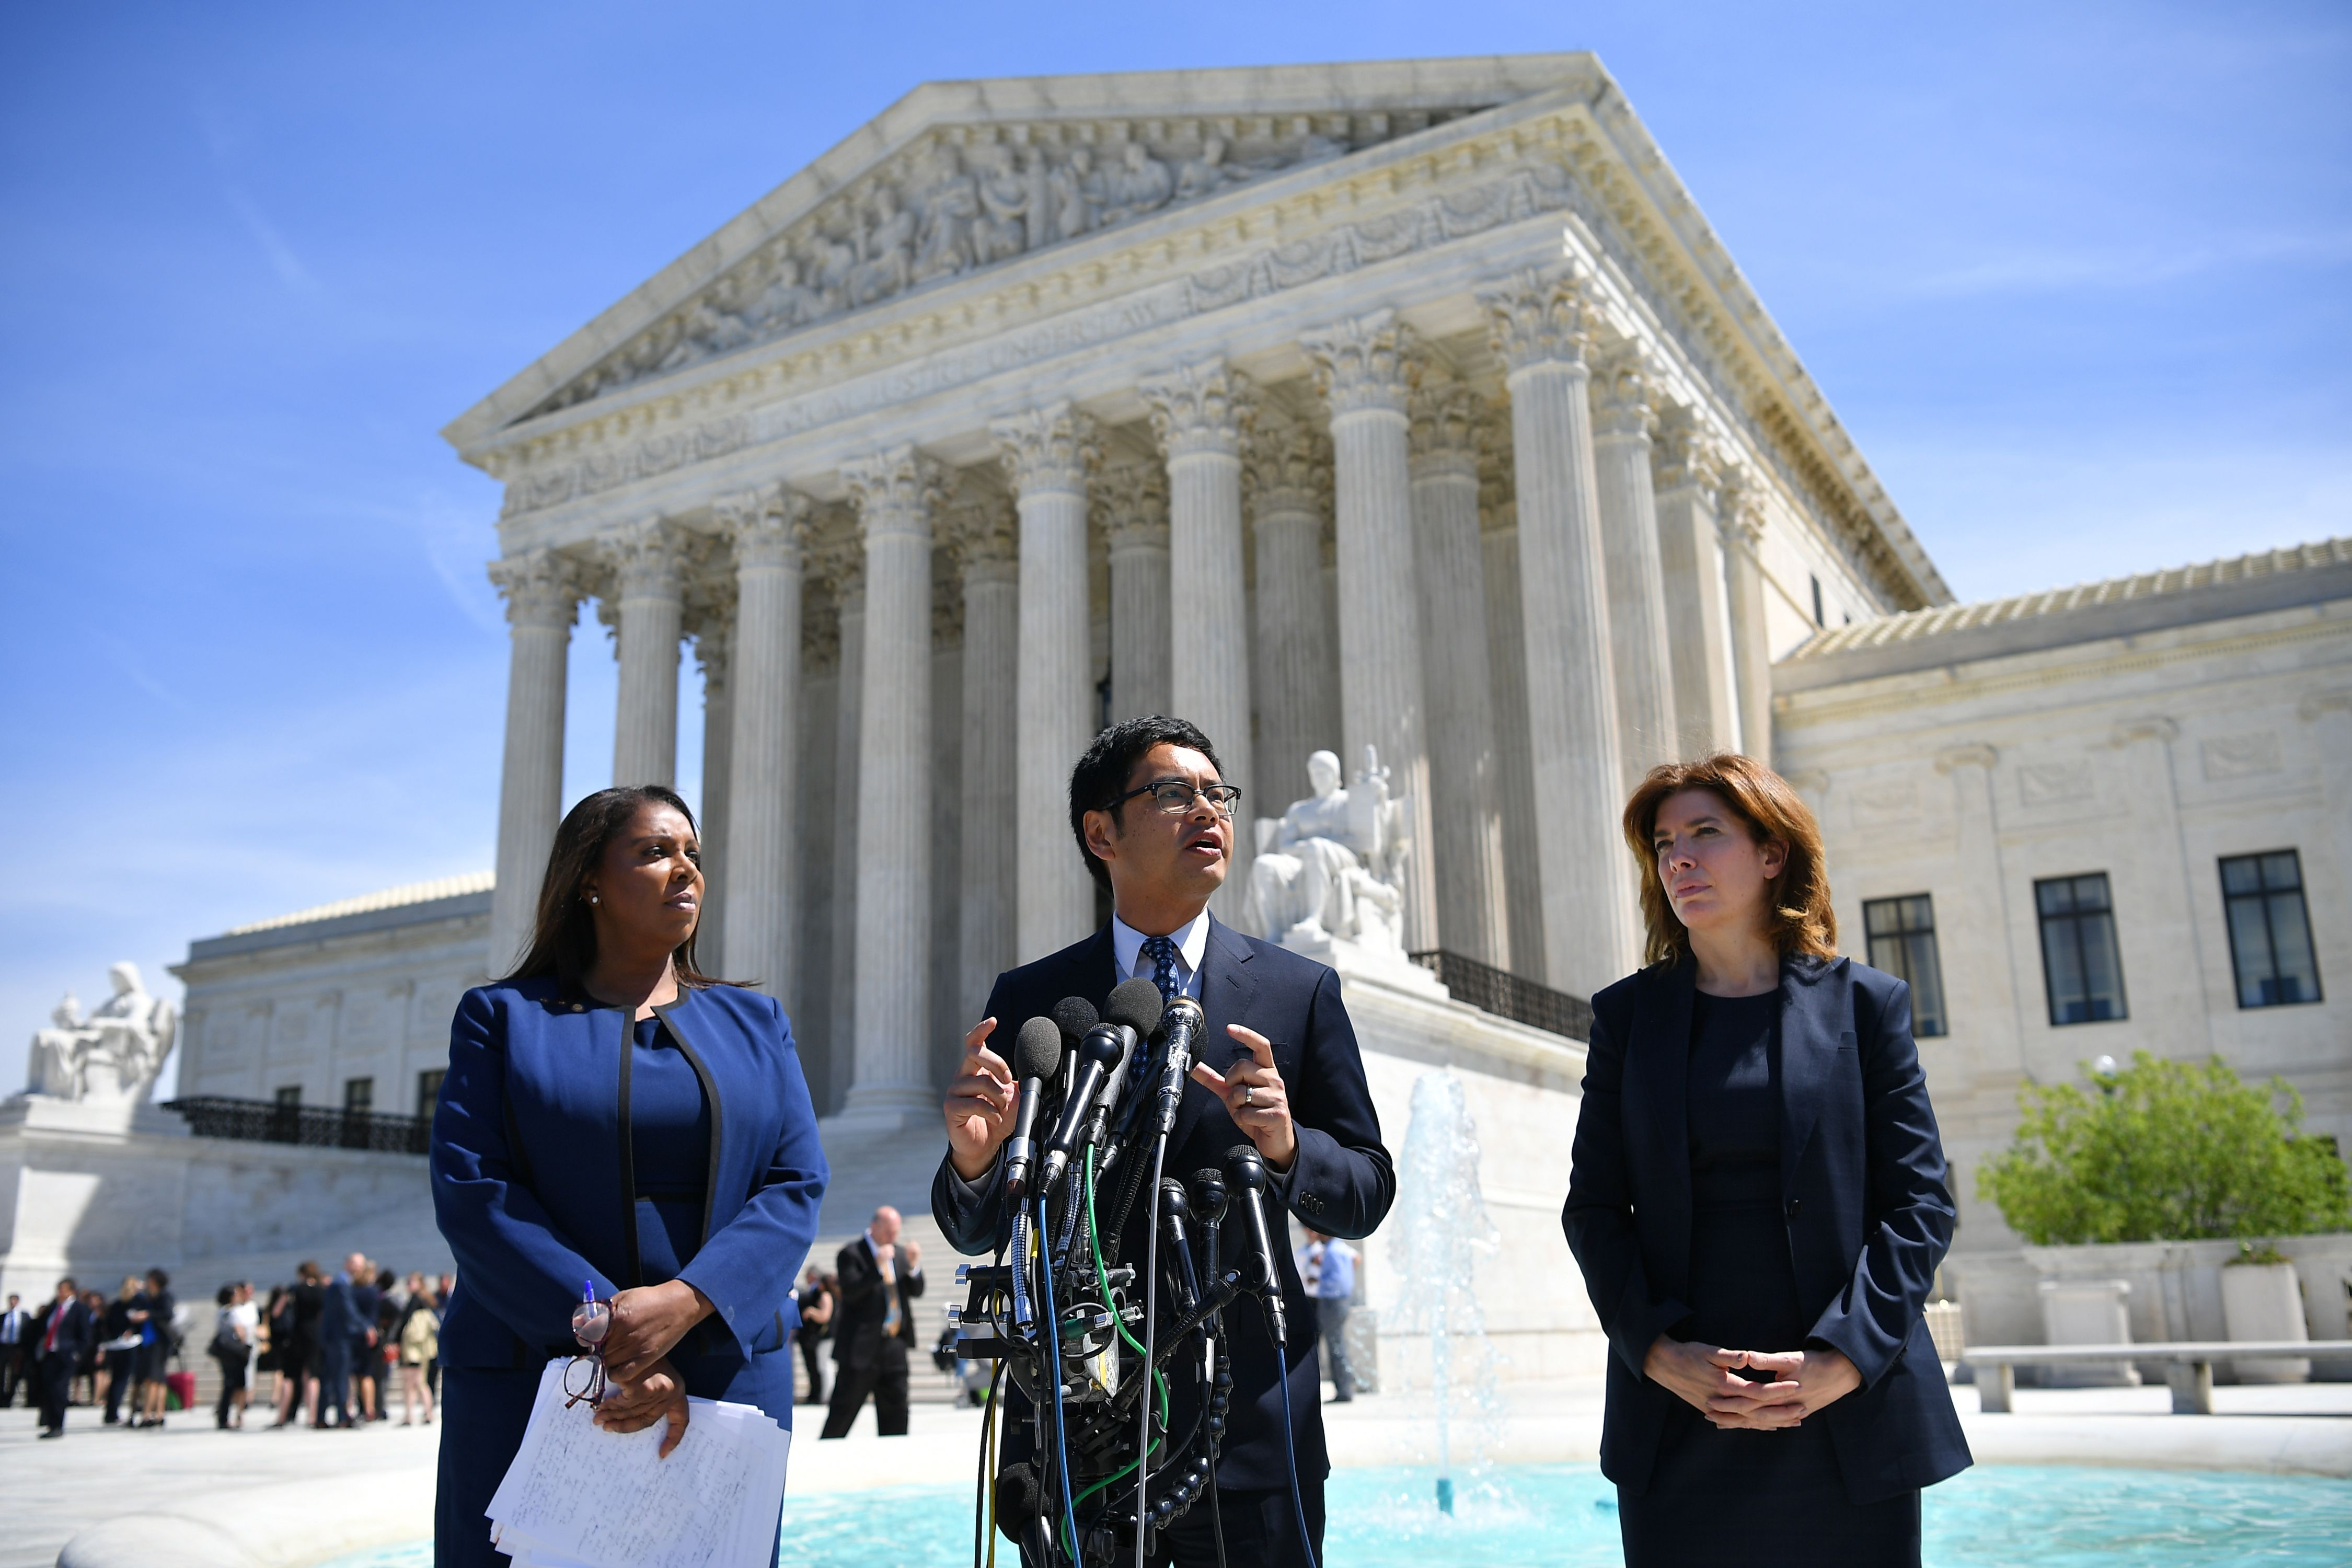 Dale Ho of the ACLU flanked by New York Attorney General Letitia James (L) and New York City census director Julie Menin (R) speaks to reporters outside of the Supreme Court on April 23, 2019. (Mandel Ngan/AFP/Getty Images)